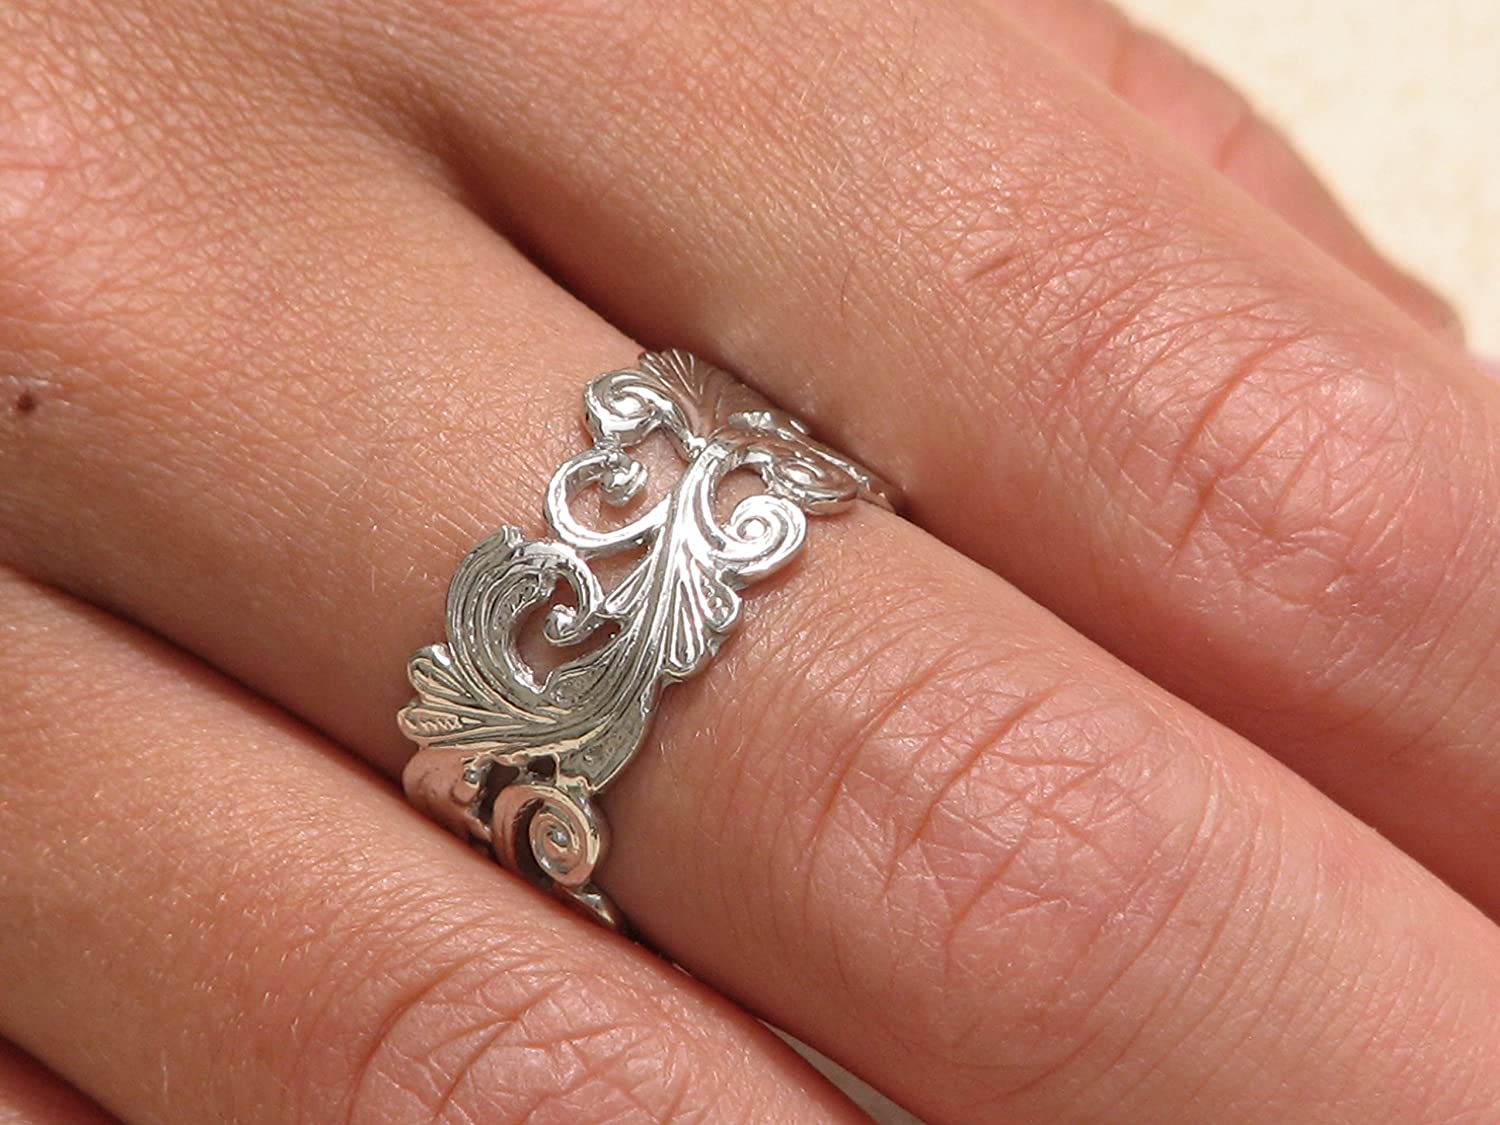 Bridal Sterling Silver band Unique Ring Gift Size 5.5 Handmade Vintage Style Women Wedding Ring